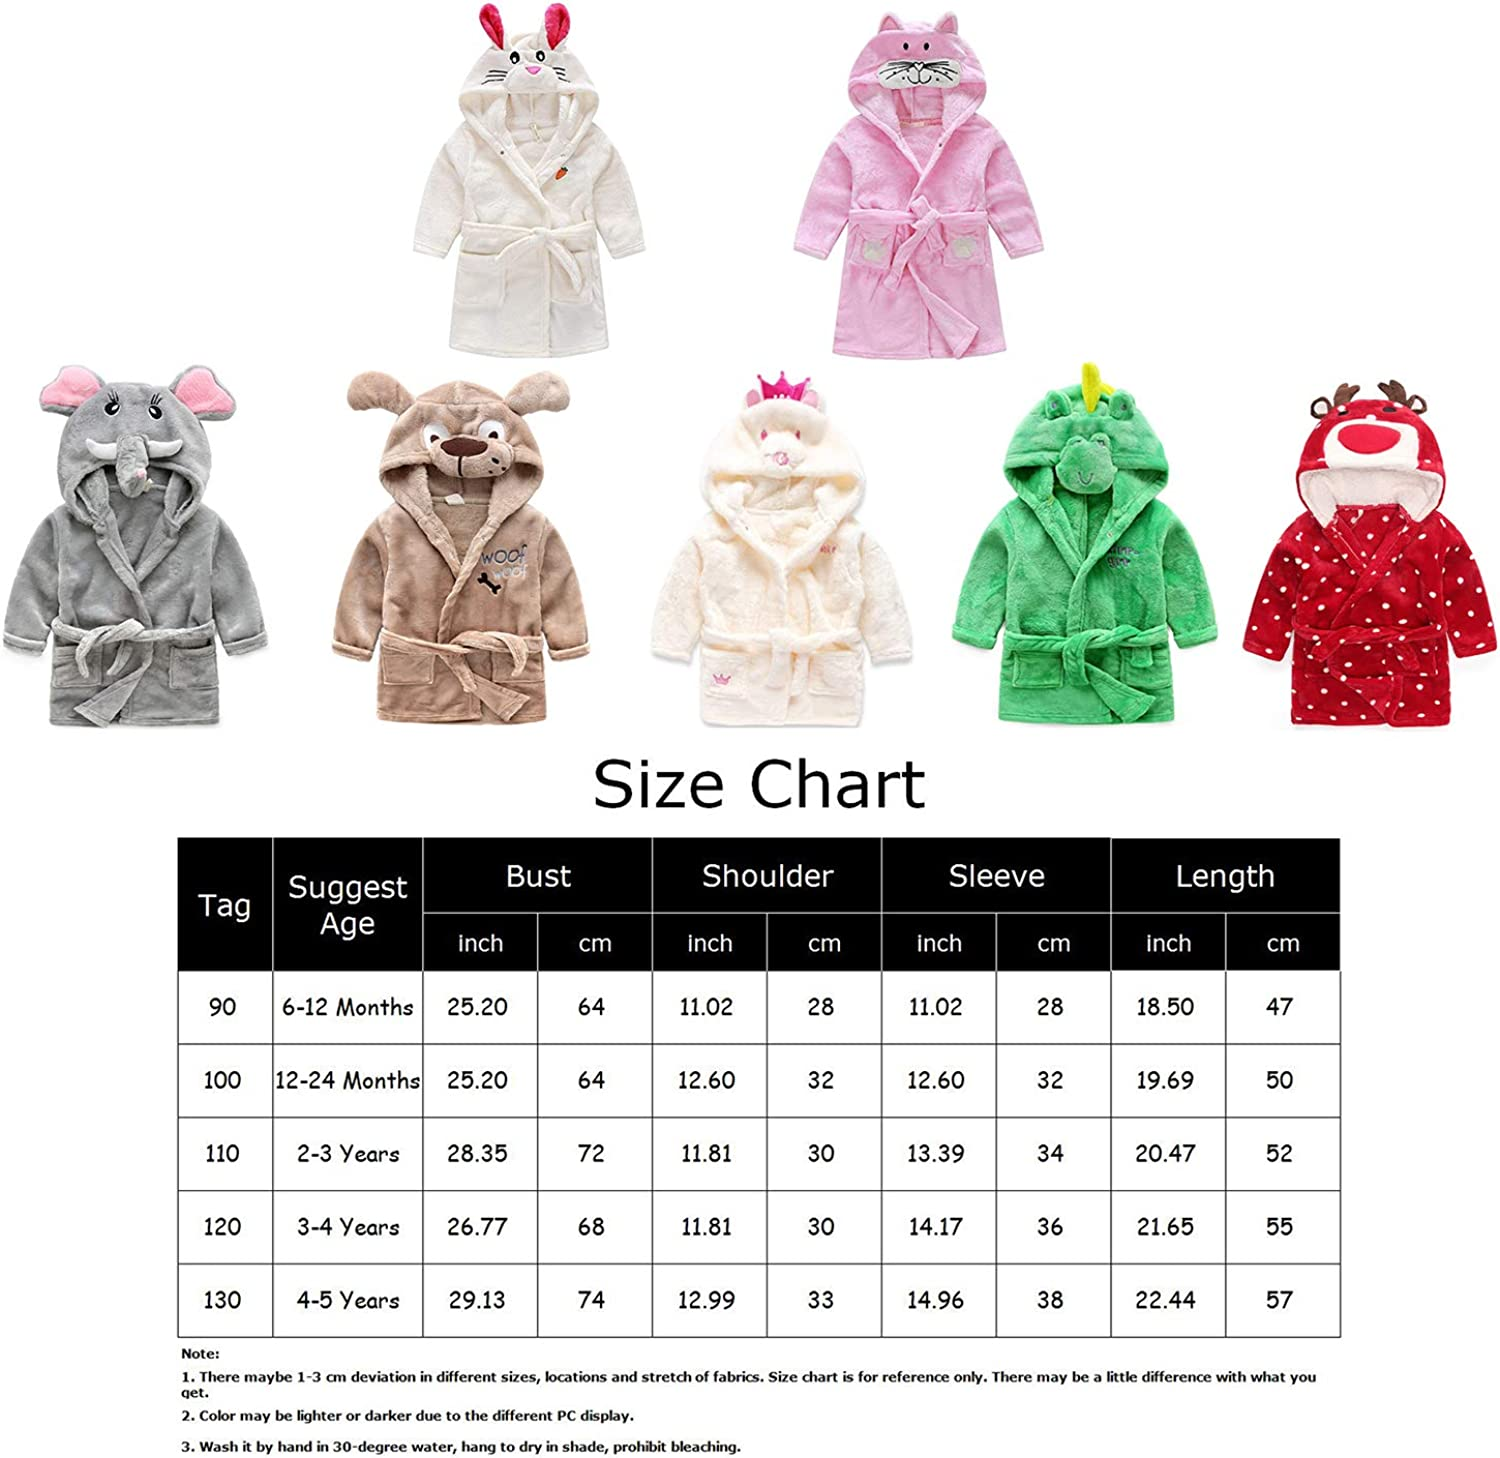 Baby Boys Robe Animal Coral Fleece Bathrobe Unisex Kids Hooded Sleepwear Pjs